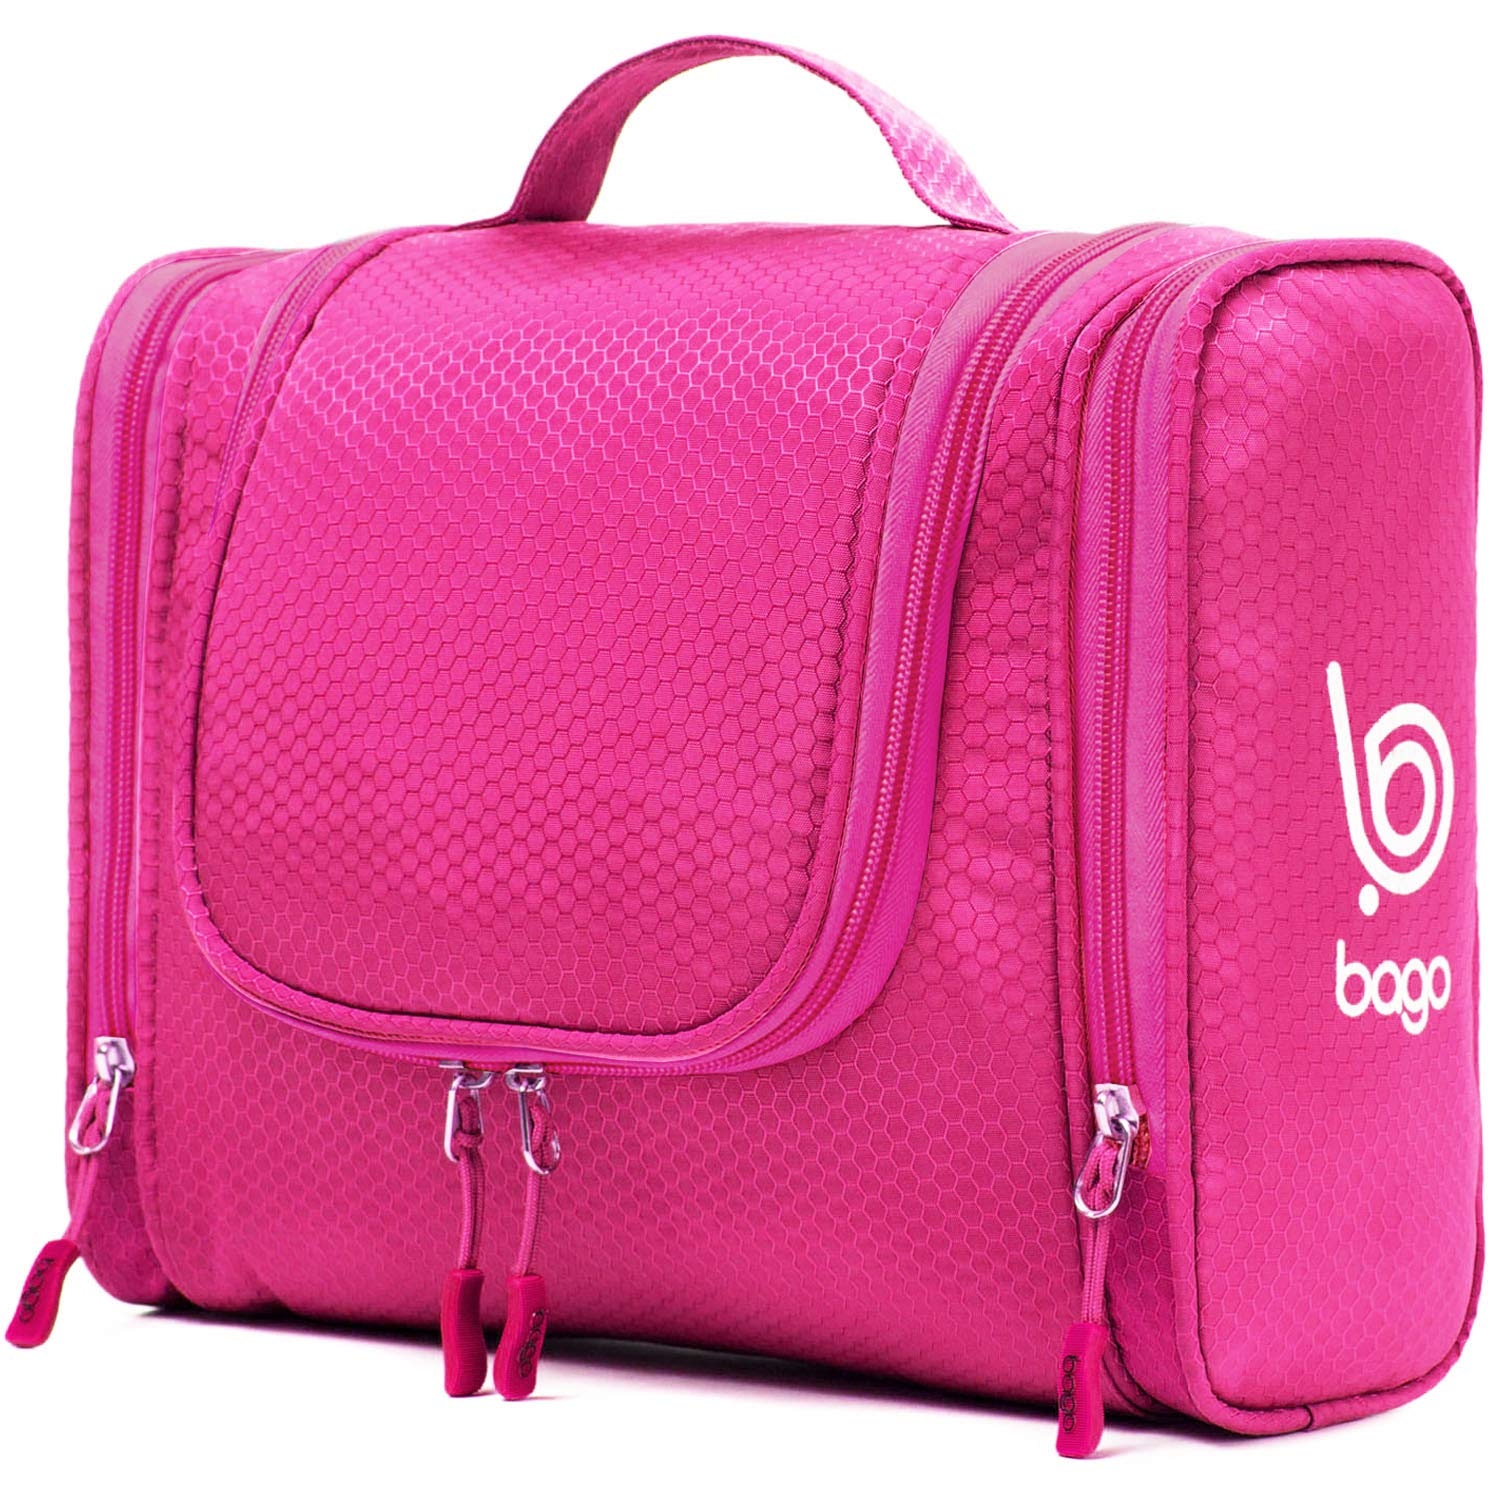 5439b47c75 Amazon.com   Bago Hanging Toiletry Bag For Women   Men - Travel Bags for  Toiletries